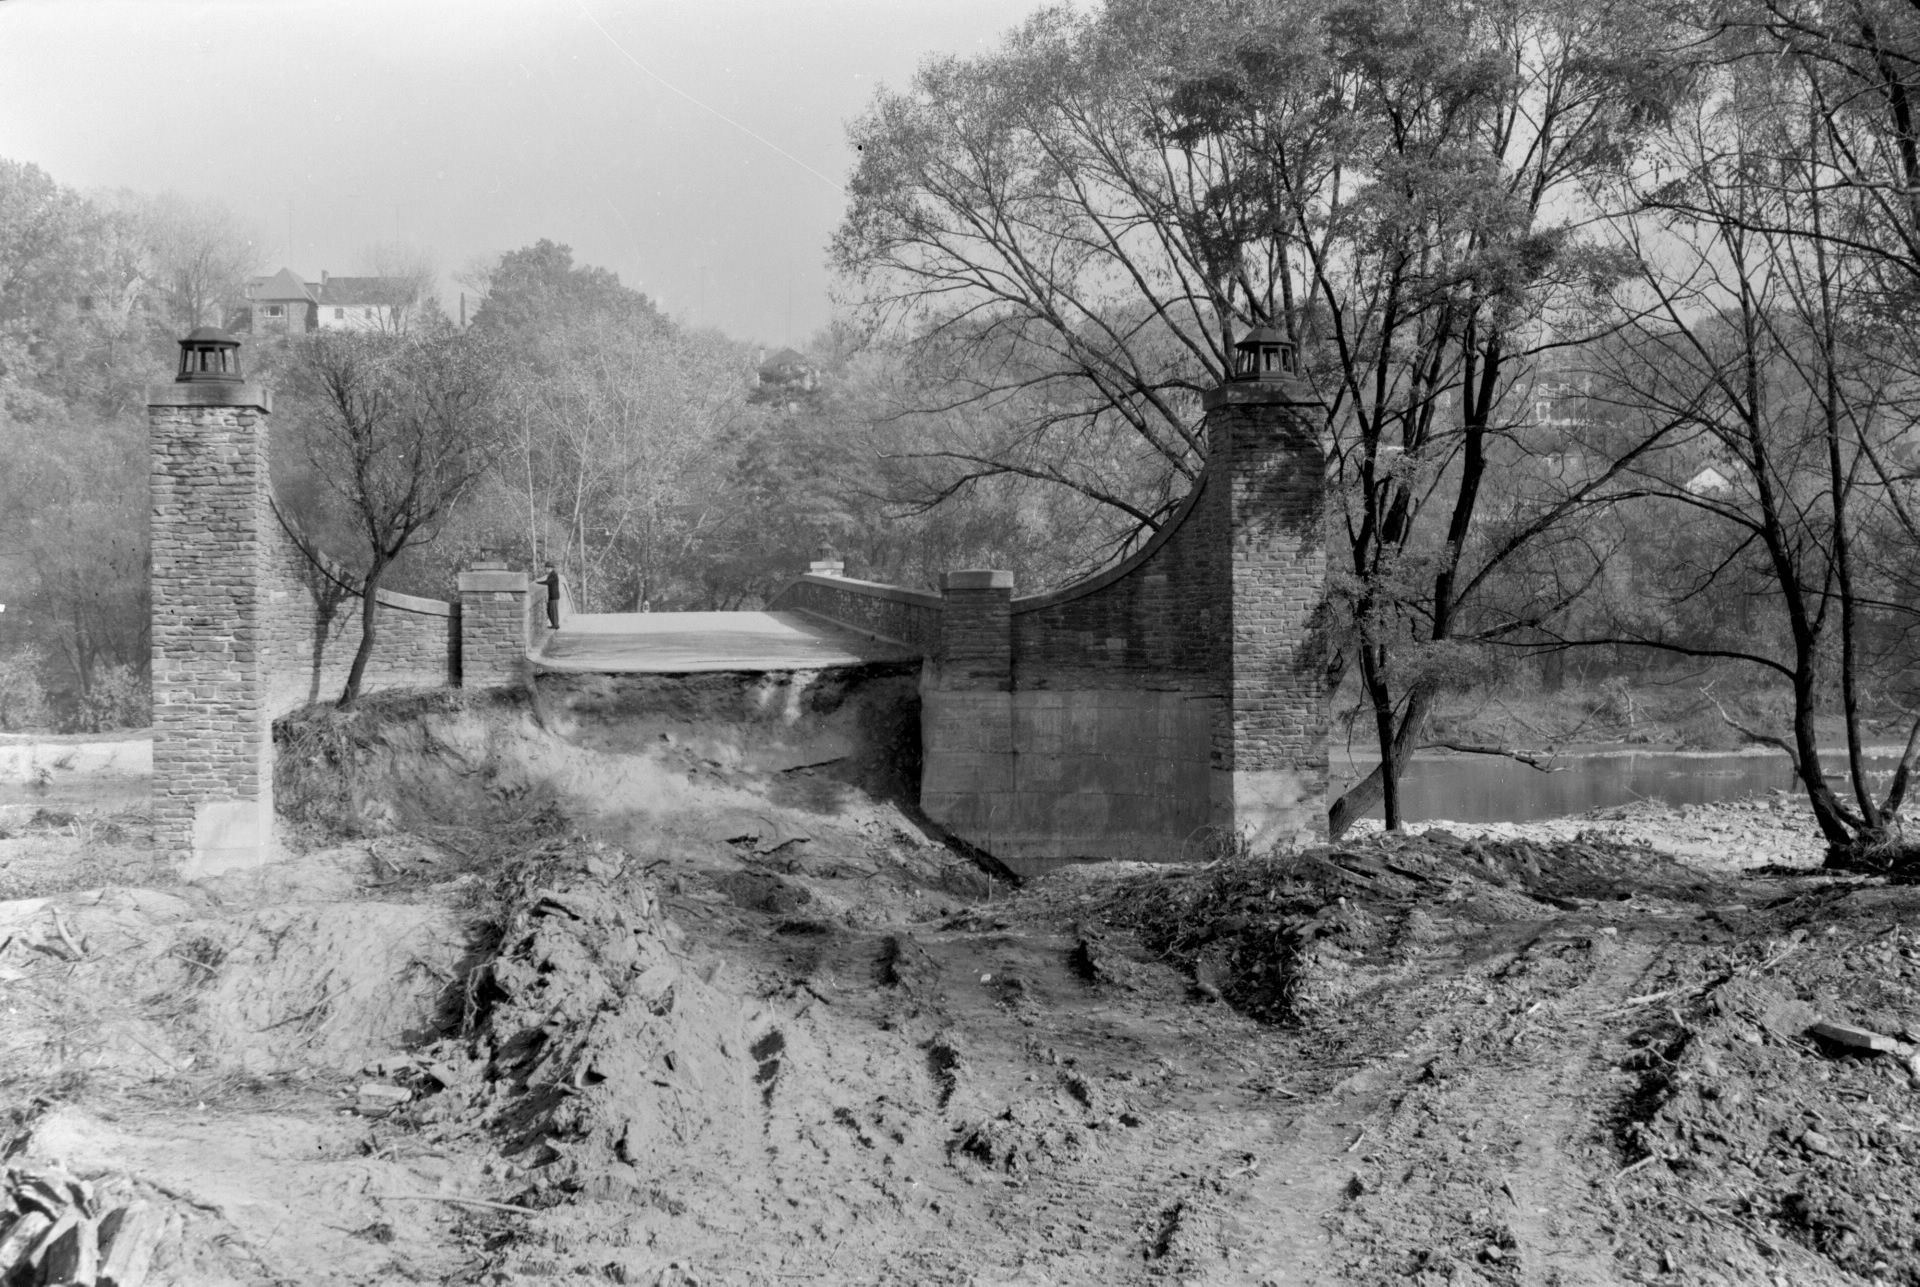 Many bridges were damaged, some were destroyed immediately and some collapsed later. The Hogg's Hollow bridge collapsed In November, for example. Traffic problems continued into the following year, with repairs and new bridge construction aggravating the congestion. The Humber River bridge on the 401 did not open until July, 1955. This image looks east toward the Humber River at Old Mill Road bridge.